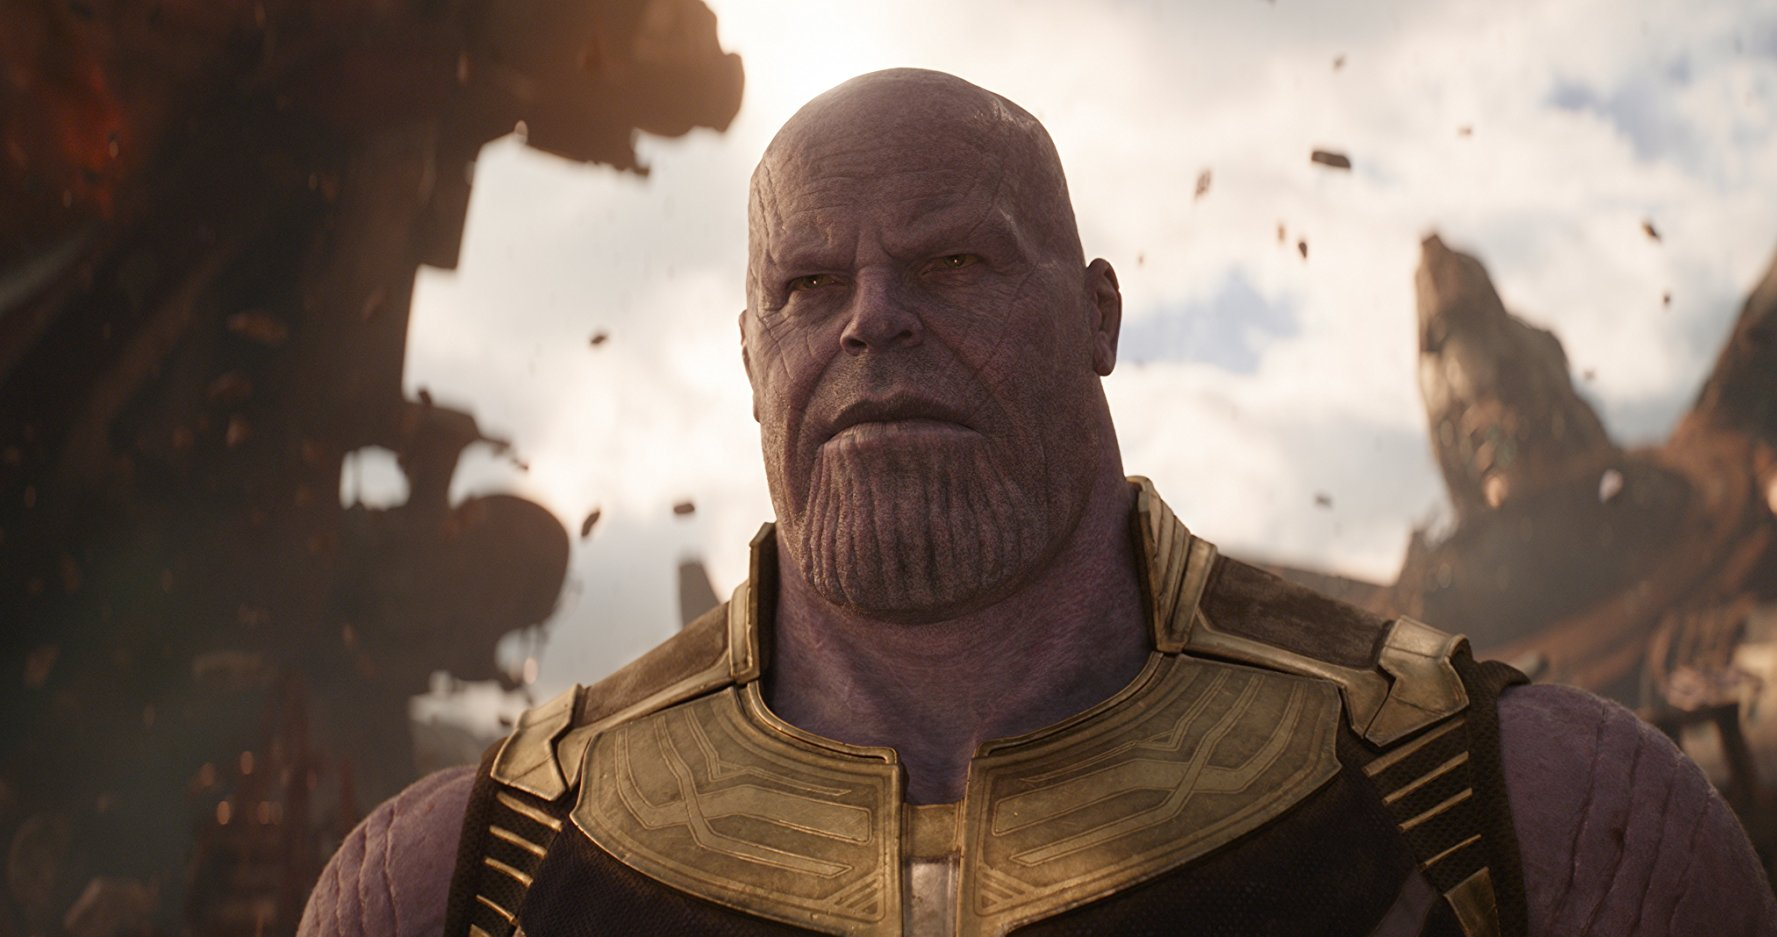 hd~[putlocker]>>-watch ! : avengers: infinity war (2018) full movie